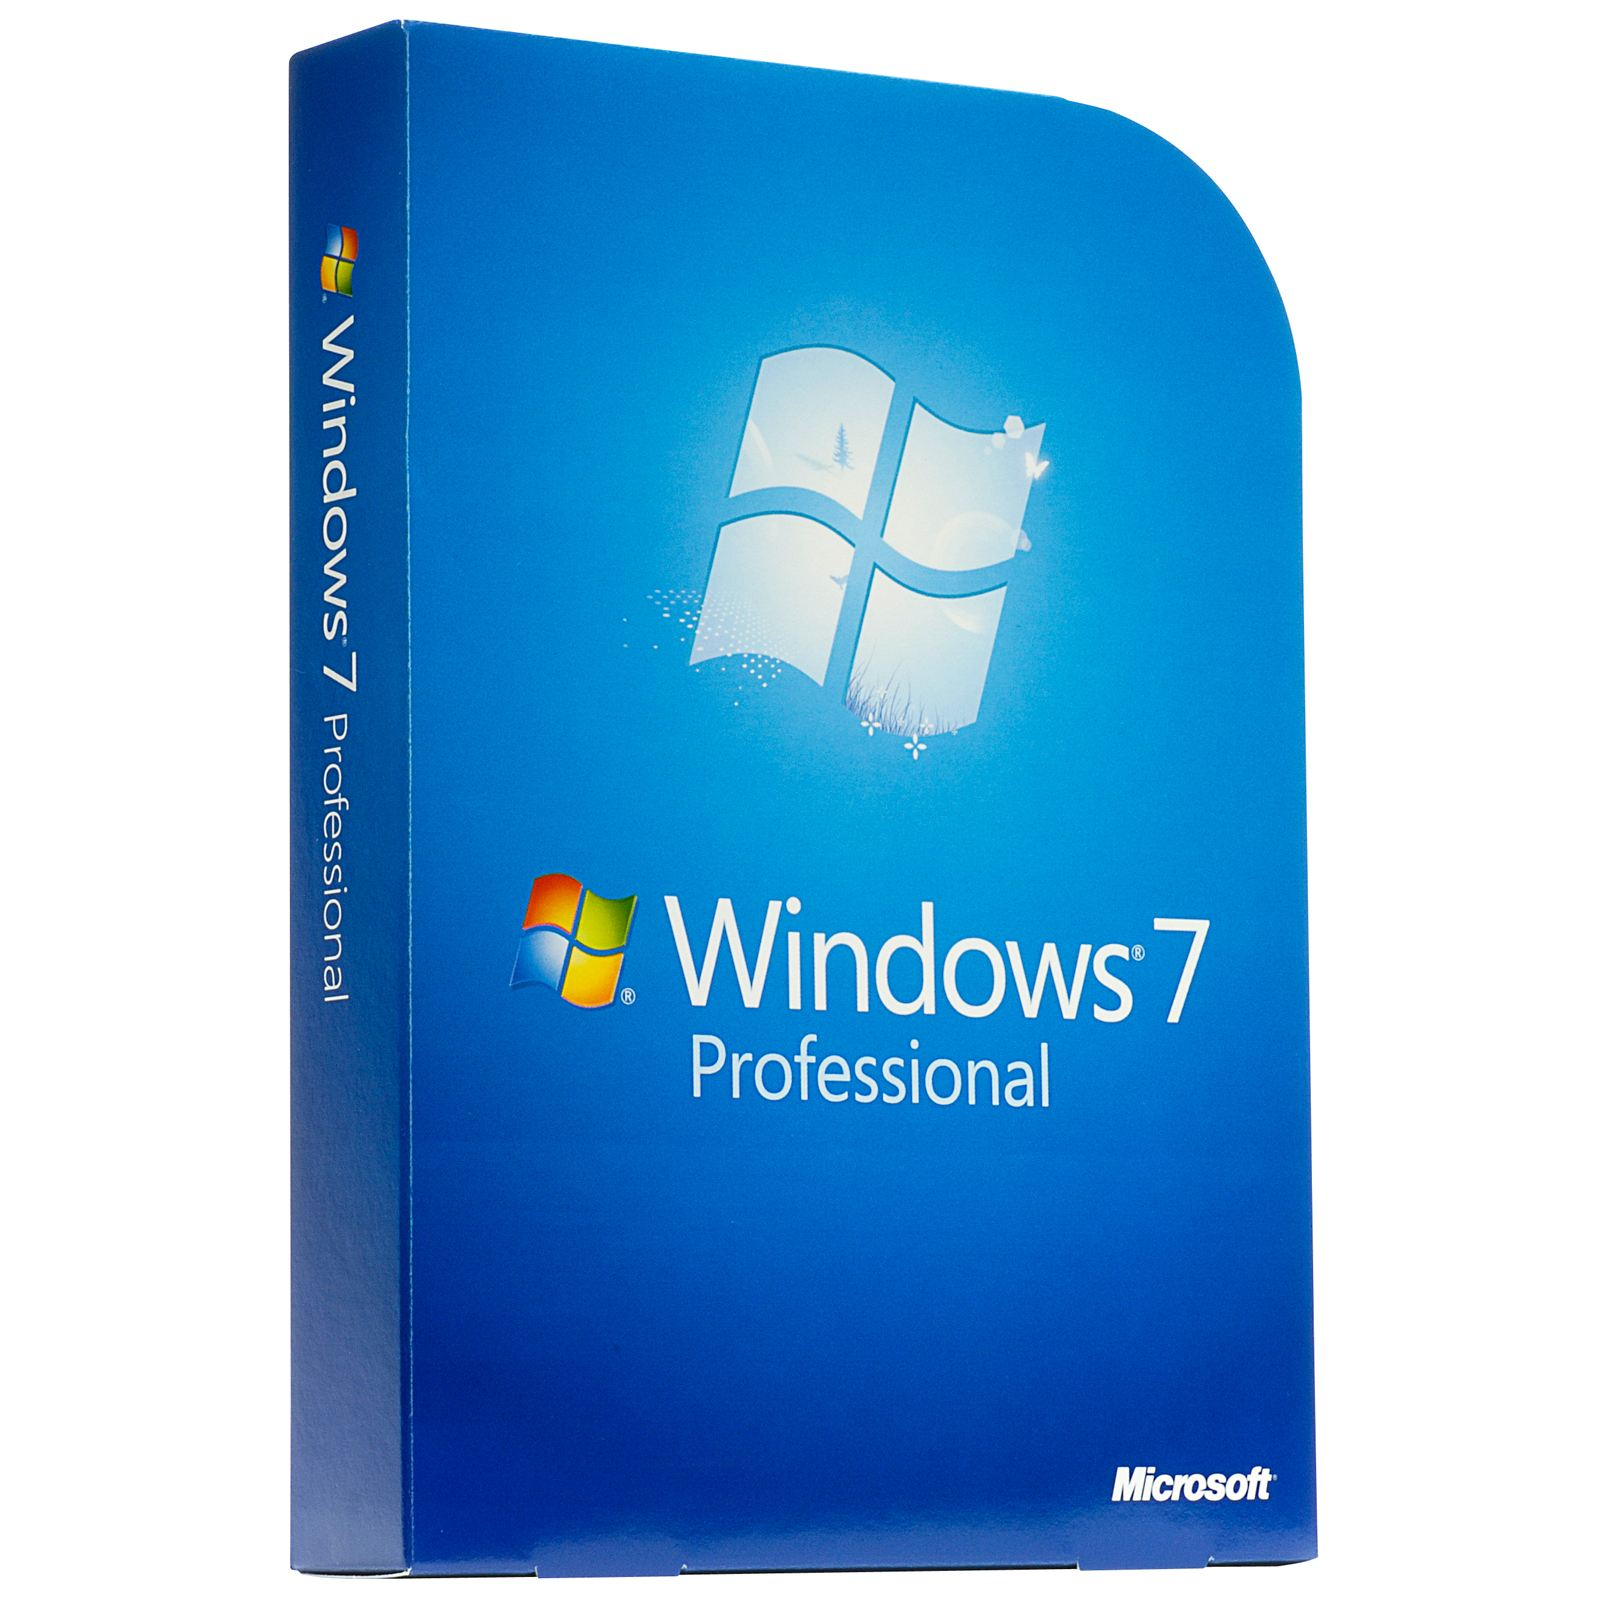 Windows 7 Professional Product Key 64 bit Free Download